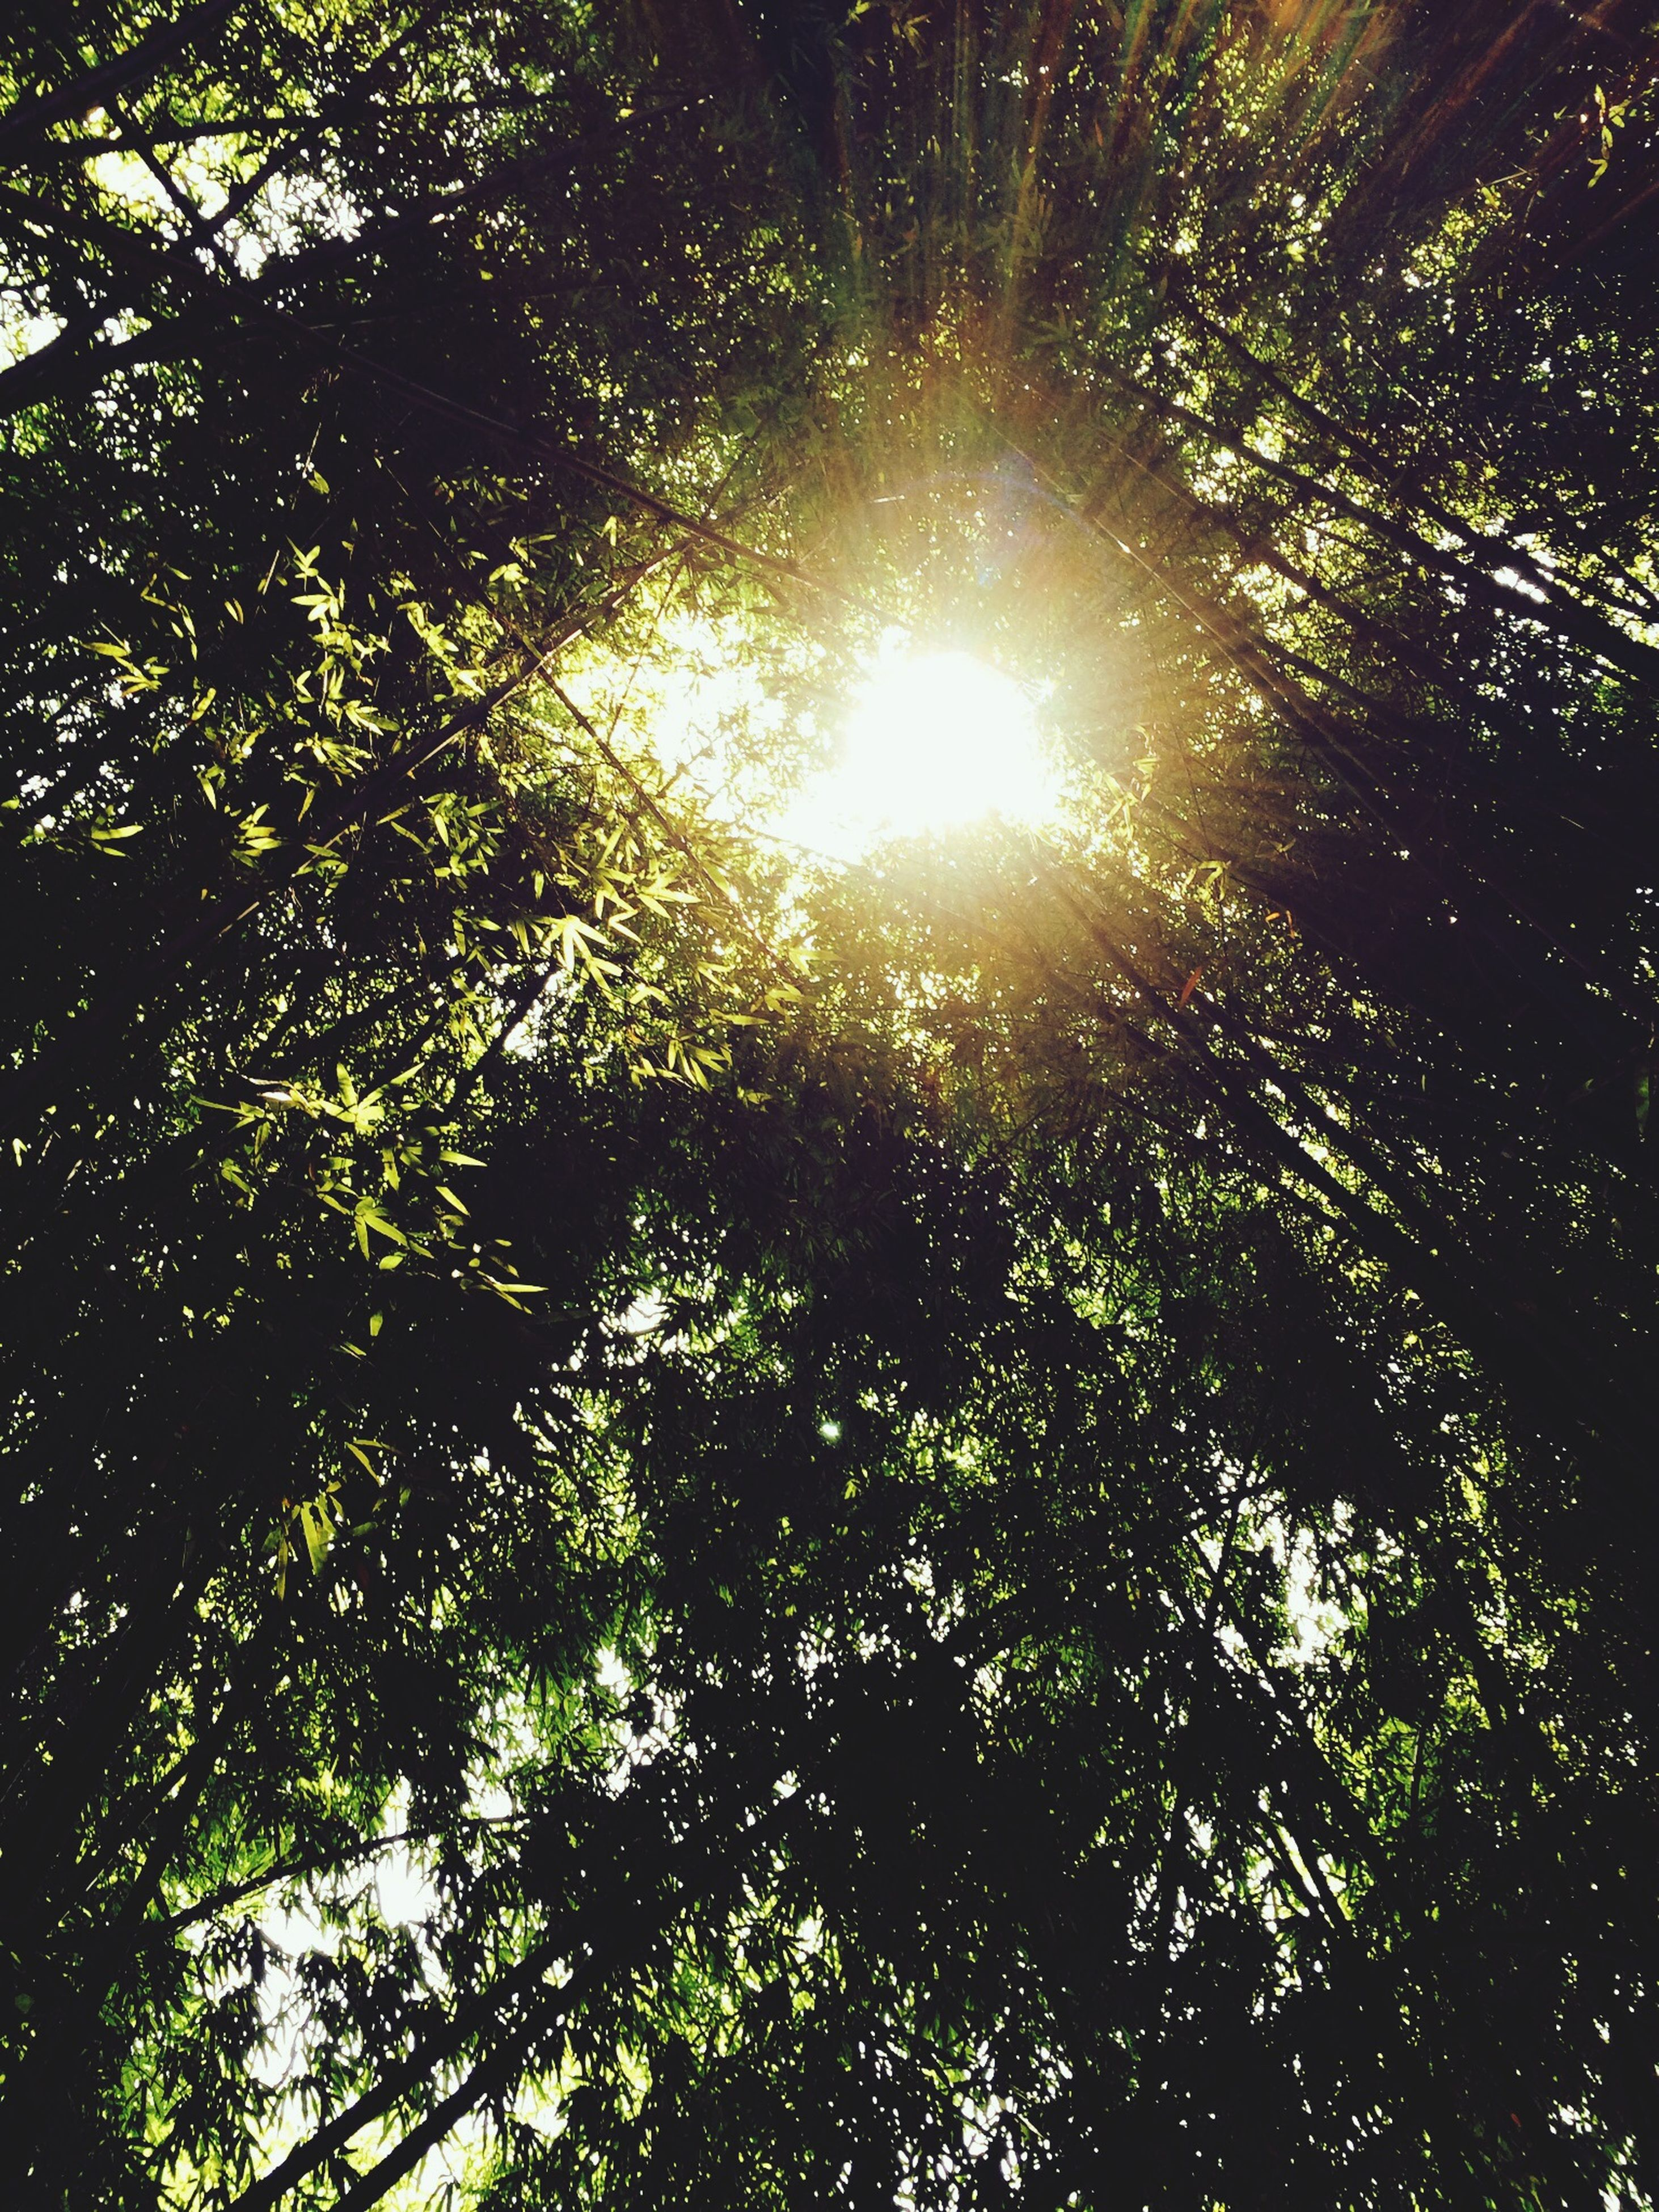 tree, low angle view, sun, growth, sunbeam, sunlight, branch, lens flare, nature, tranquility, beauty in nature, green color, sunny, bright, sky, day, back lit, forest, leaf, scenics